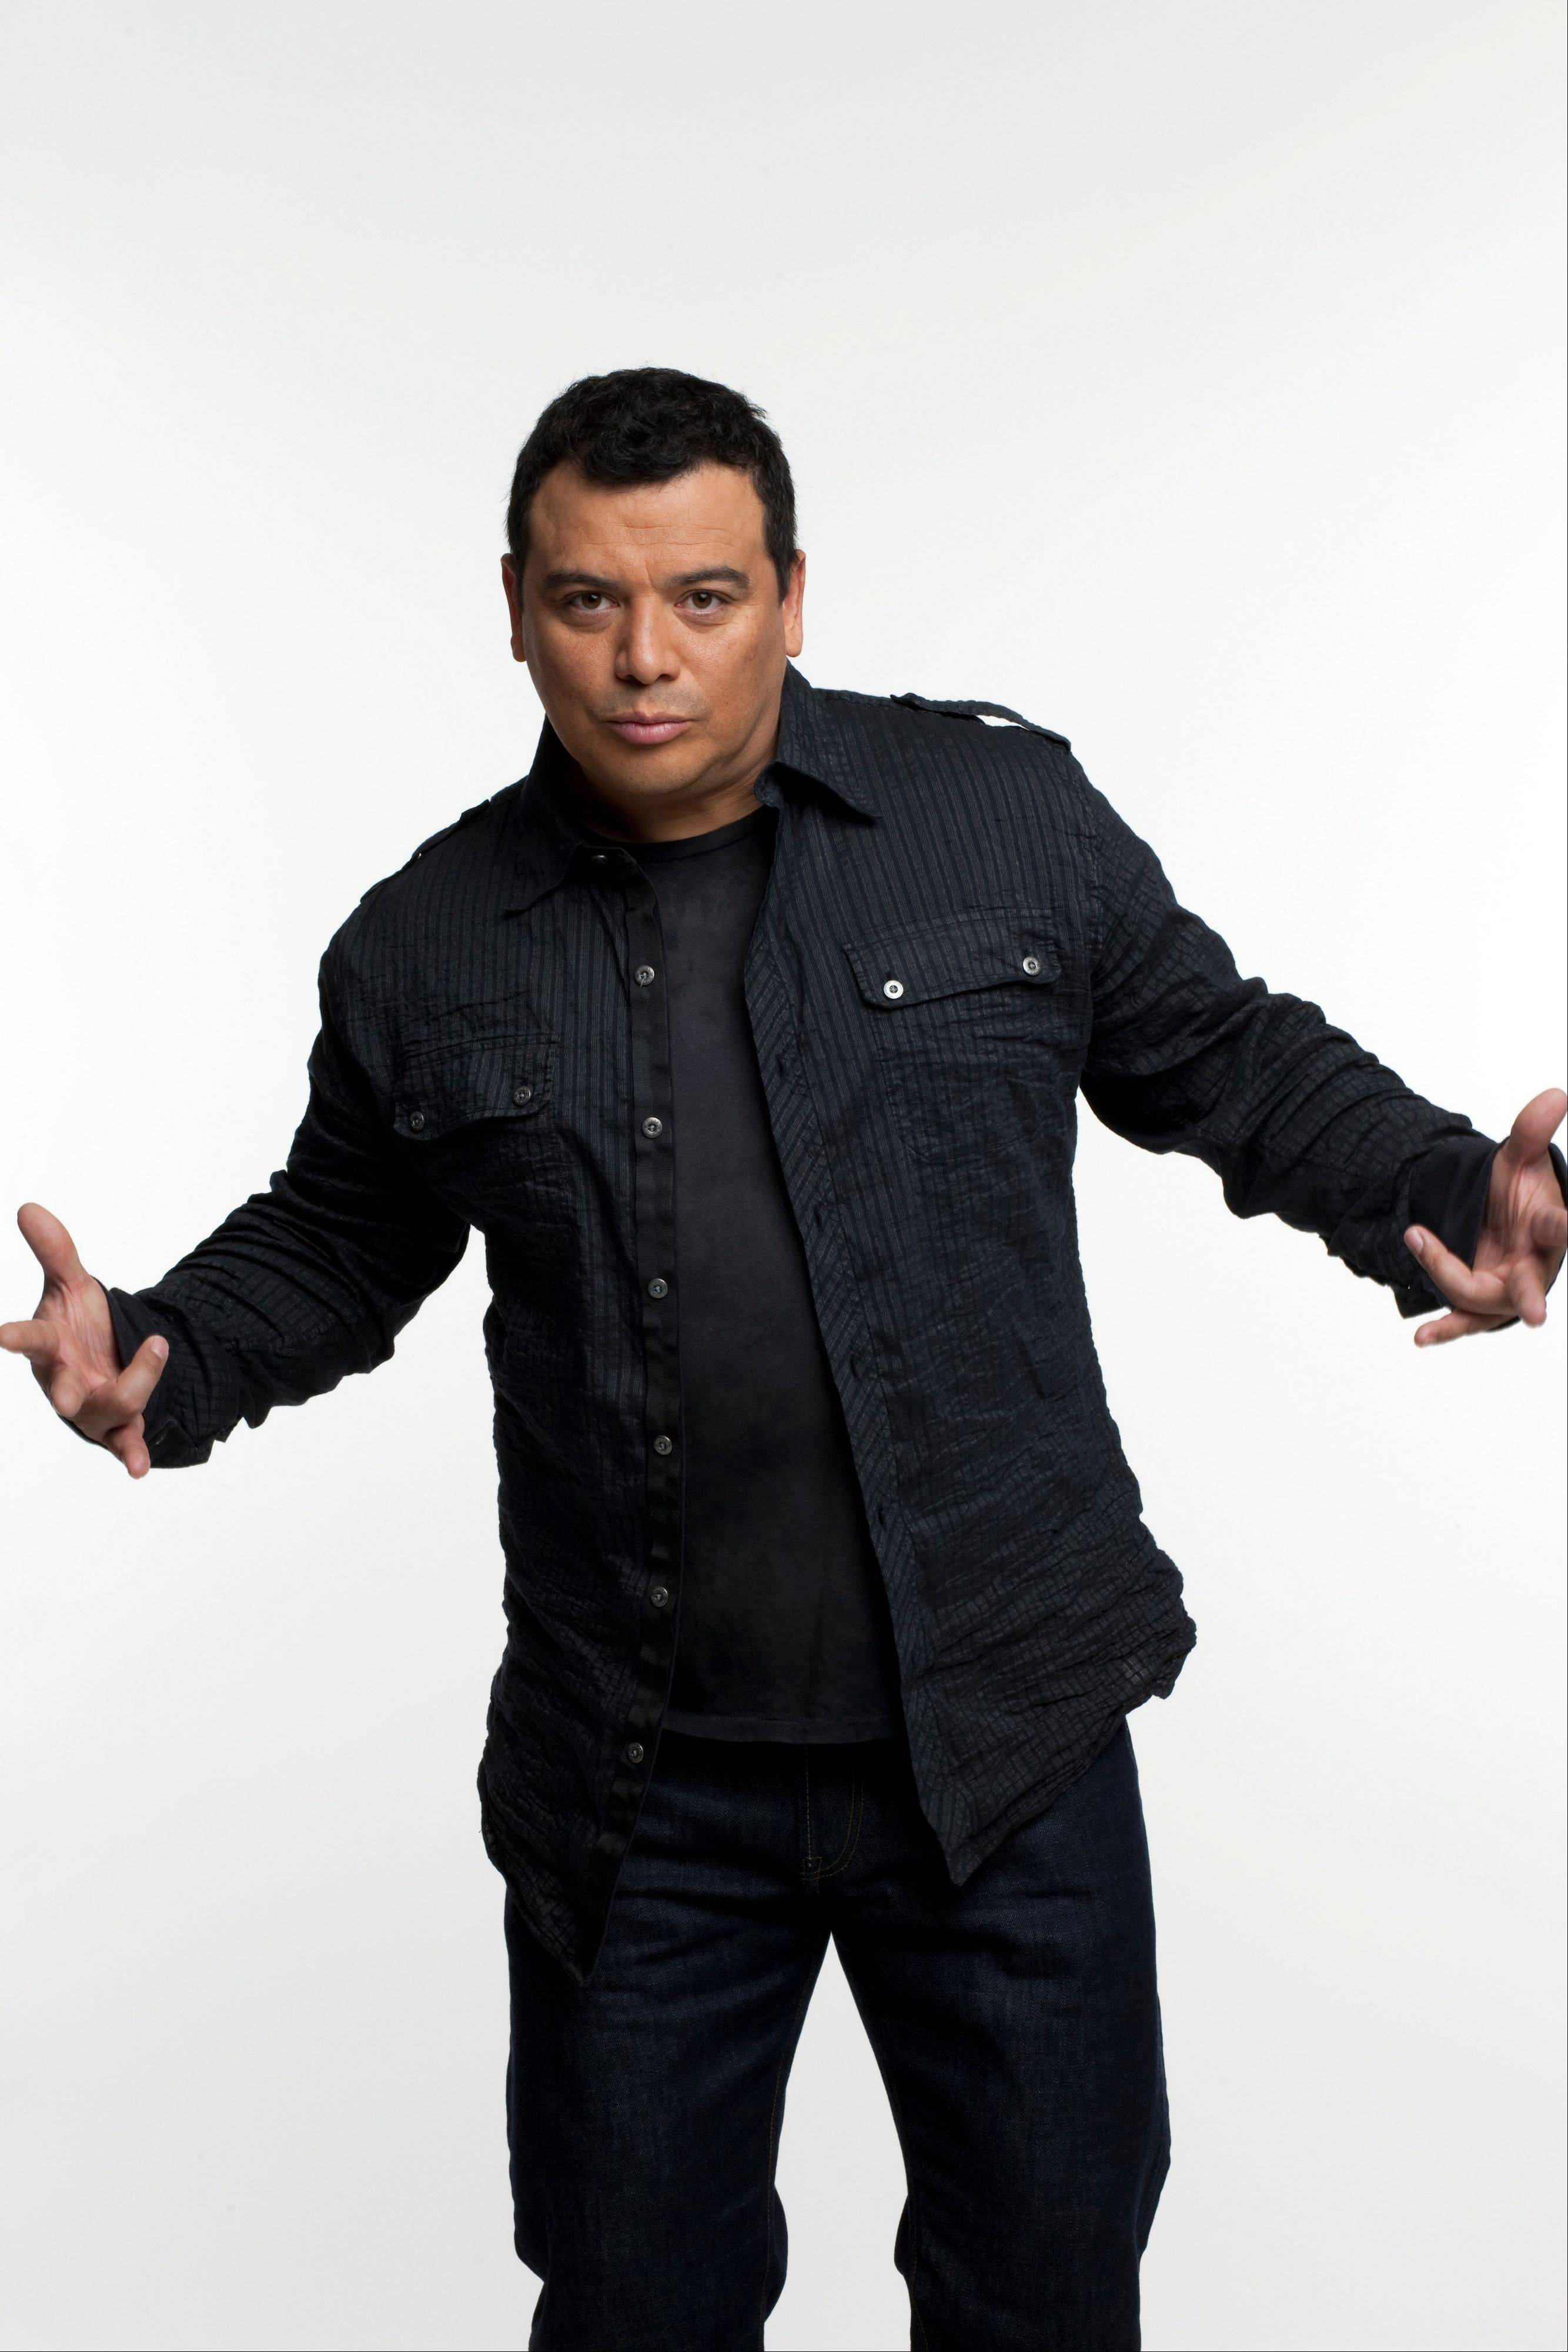 Carlos Mencia comes to the Improv Comedy Showcase in Schaumburg on Friday and Saturday, June 8-9.